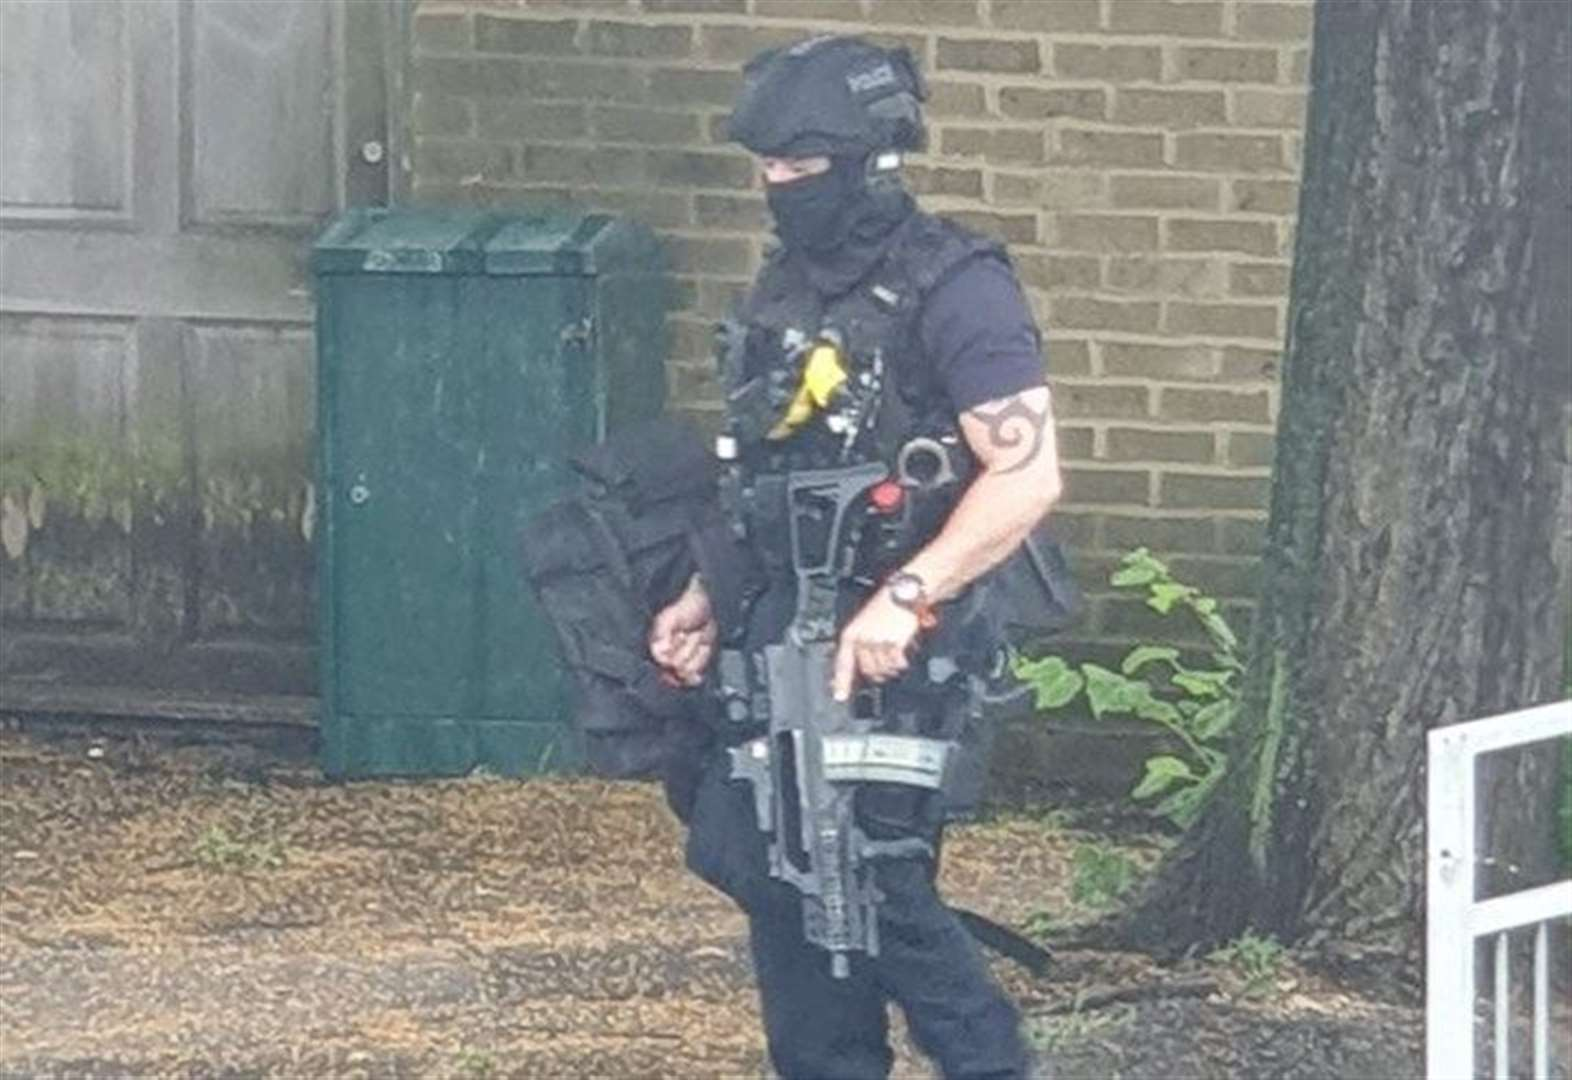 Armed police arrest man near primary school